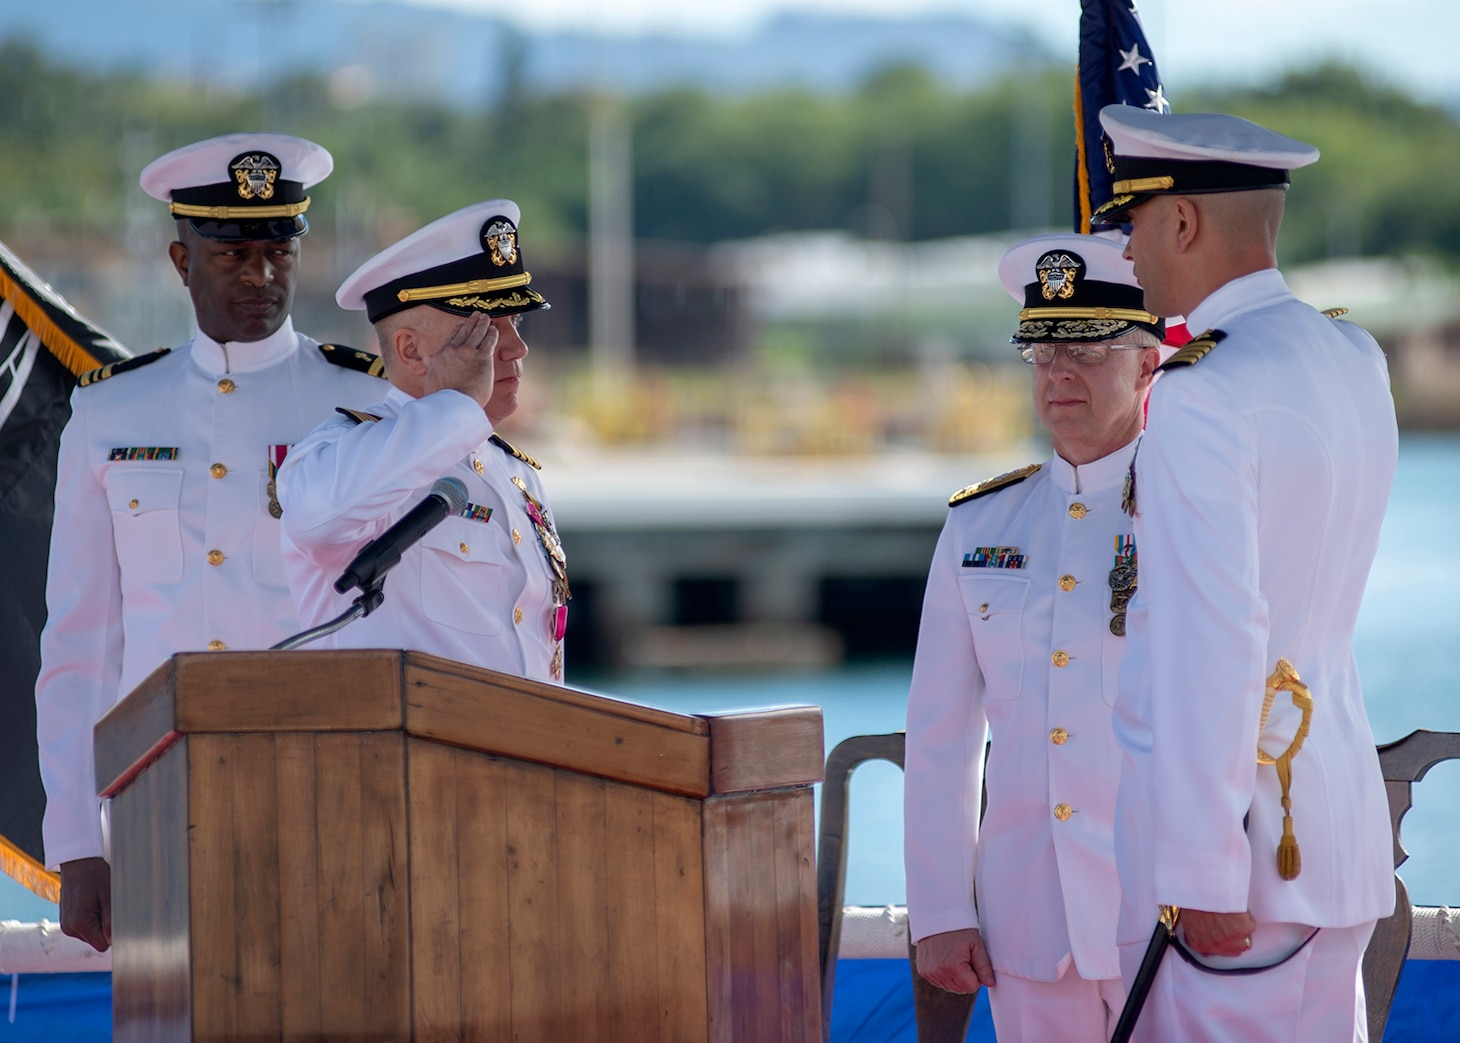 PEARL HARBOR (Jan. 08, 2019) - Capt. Richard Seif, left, is relieved of command by Capt. Wesley Bringham, during the Commander, Submarine Squadron One change of command ceremony on the submarine piers in Joint Base Pearl Harbor-Hickam, Jan. 08. (U.S. Navy photo by Mass Communication Specialist 2nd Class Melvin J. Gonzalvo)